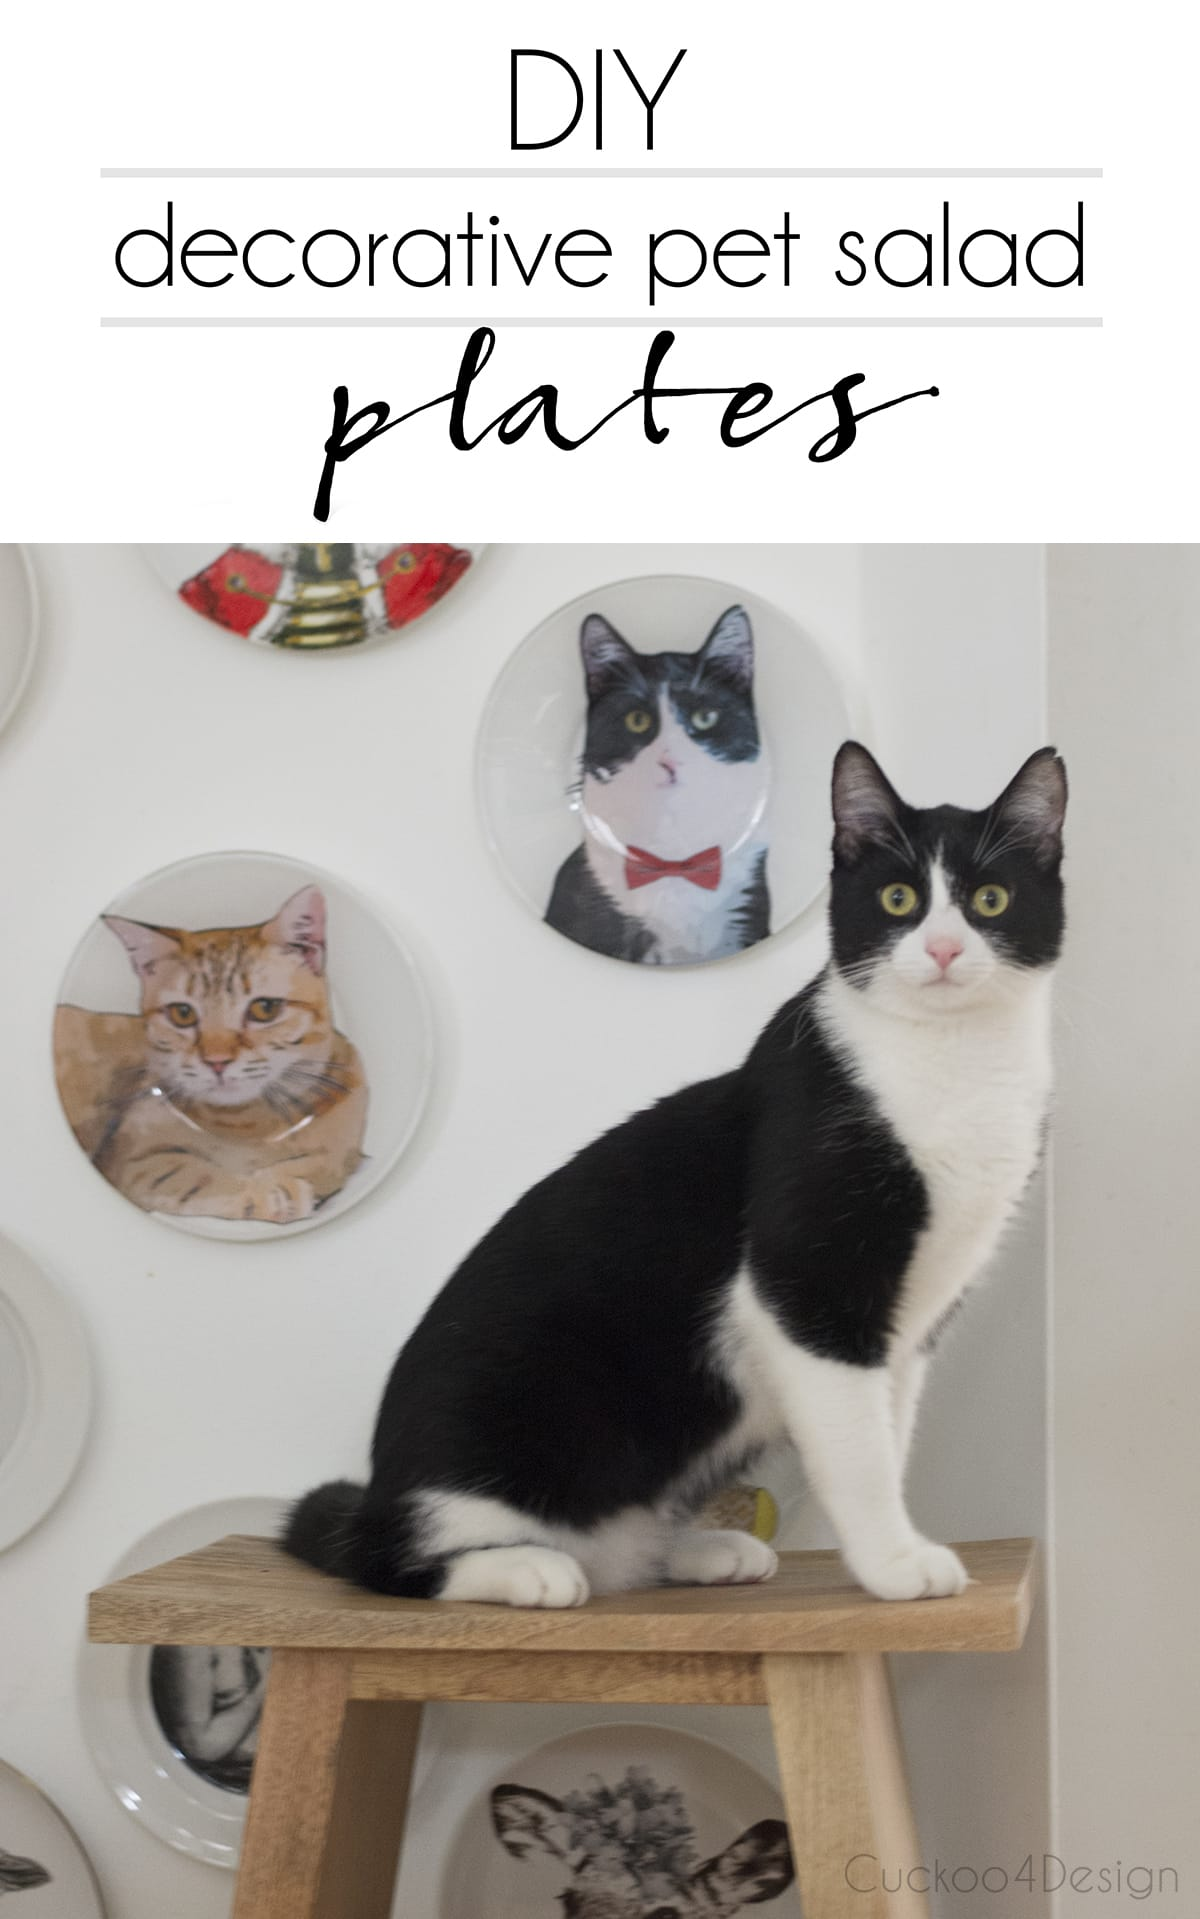 DIY decorative pet salad plates | DIY decorative animal plates | DIY decorative plates | decorative pet plates | handmade plates for a gallery wall | how to make memorative plates of your pets | anthropomorphic animal plates | plate gallery wall | dapper animal salad plates | how to turn your pet photos into art | pet portraits